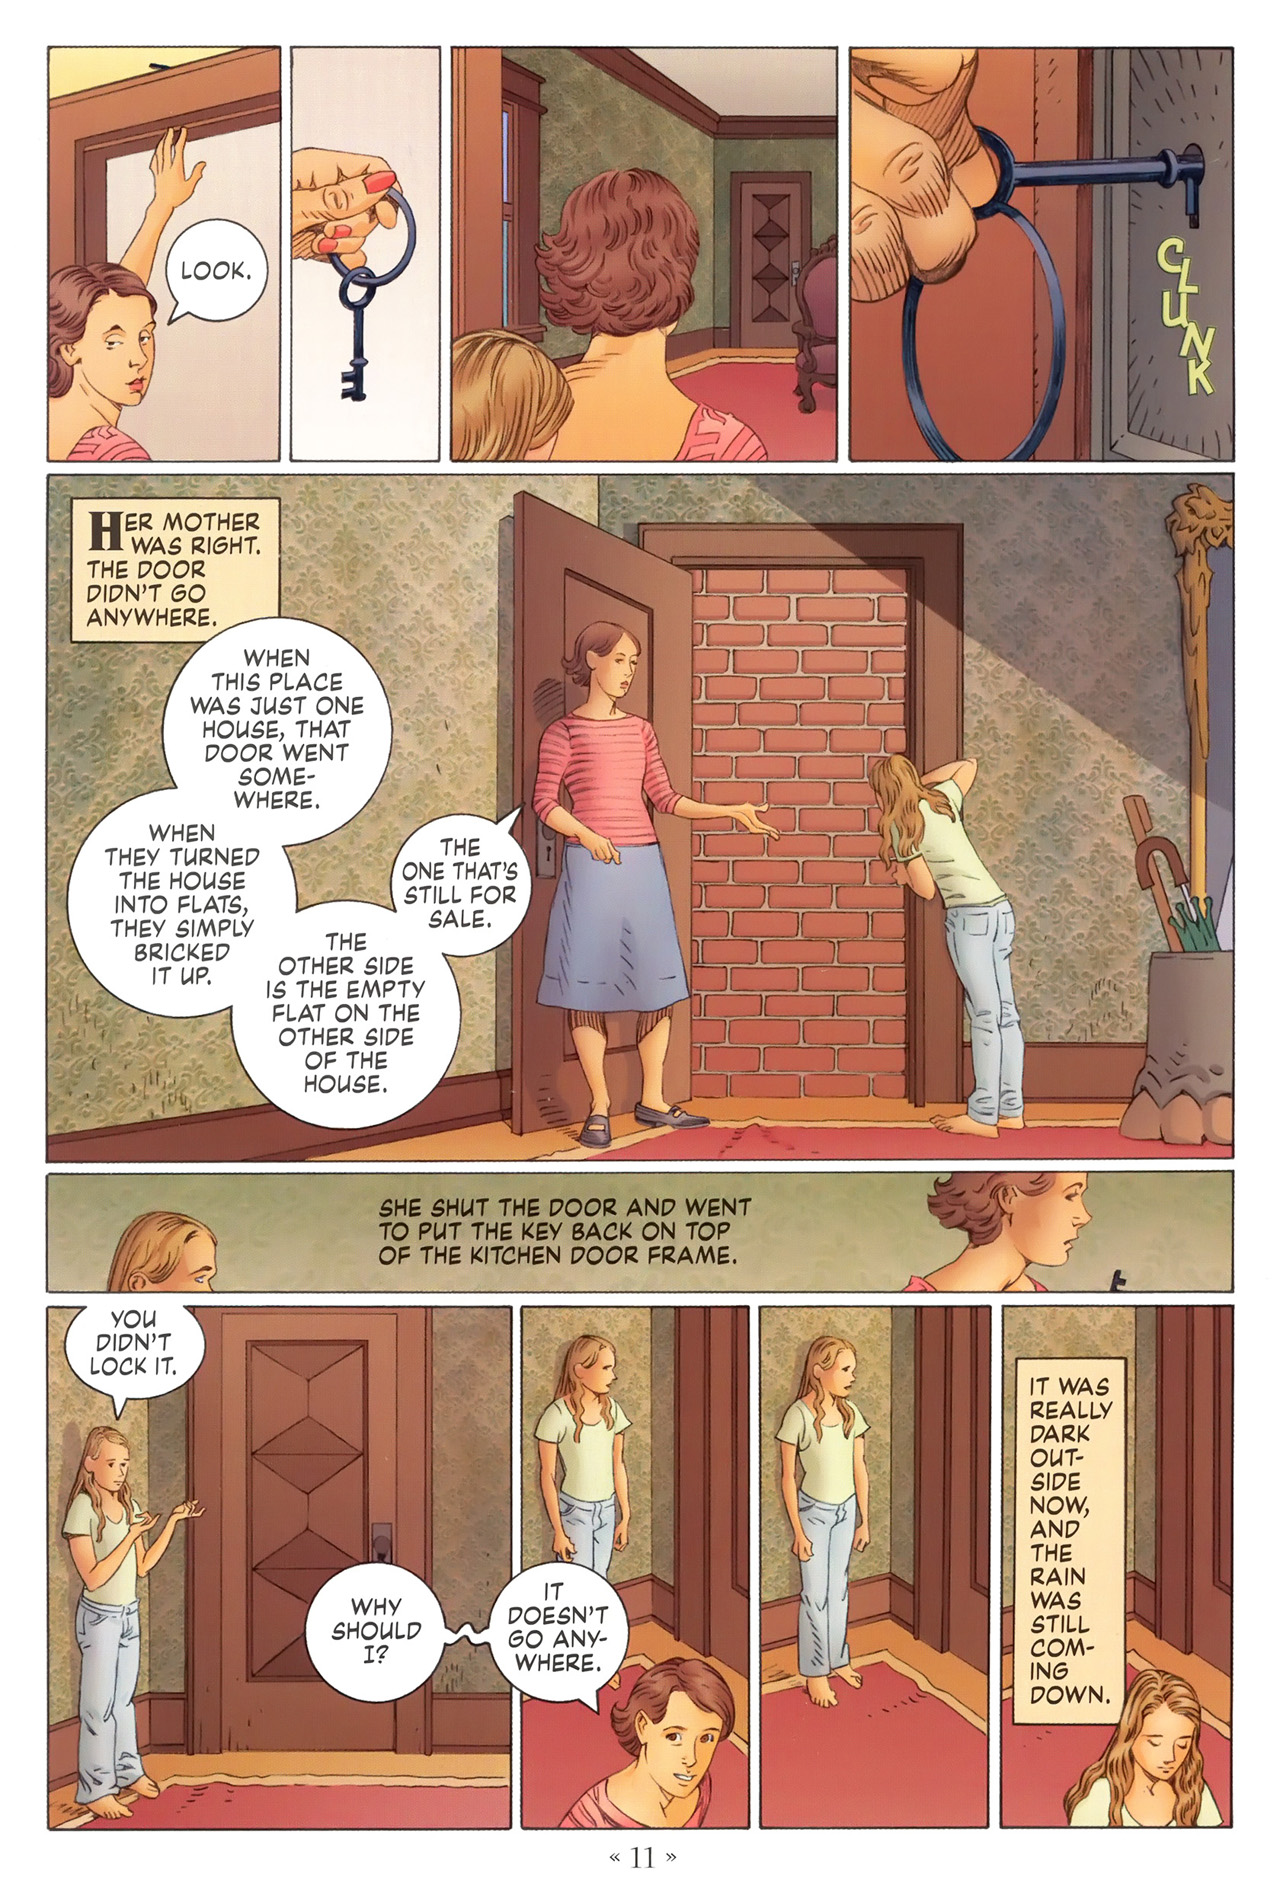 Read online Coraline comic -  Issue #1 - 17